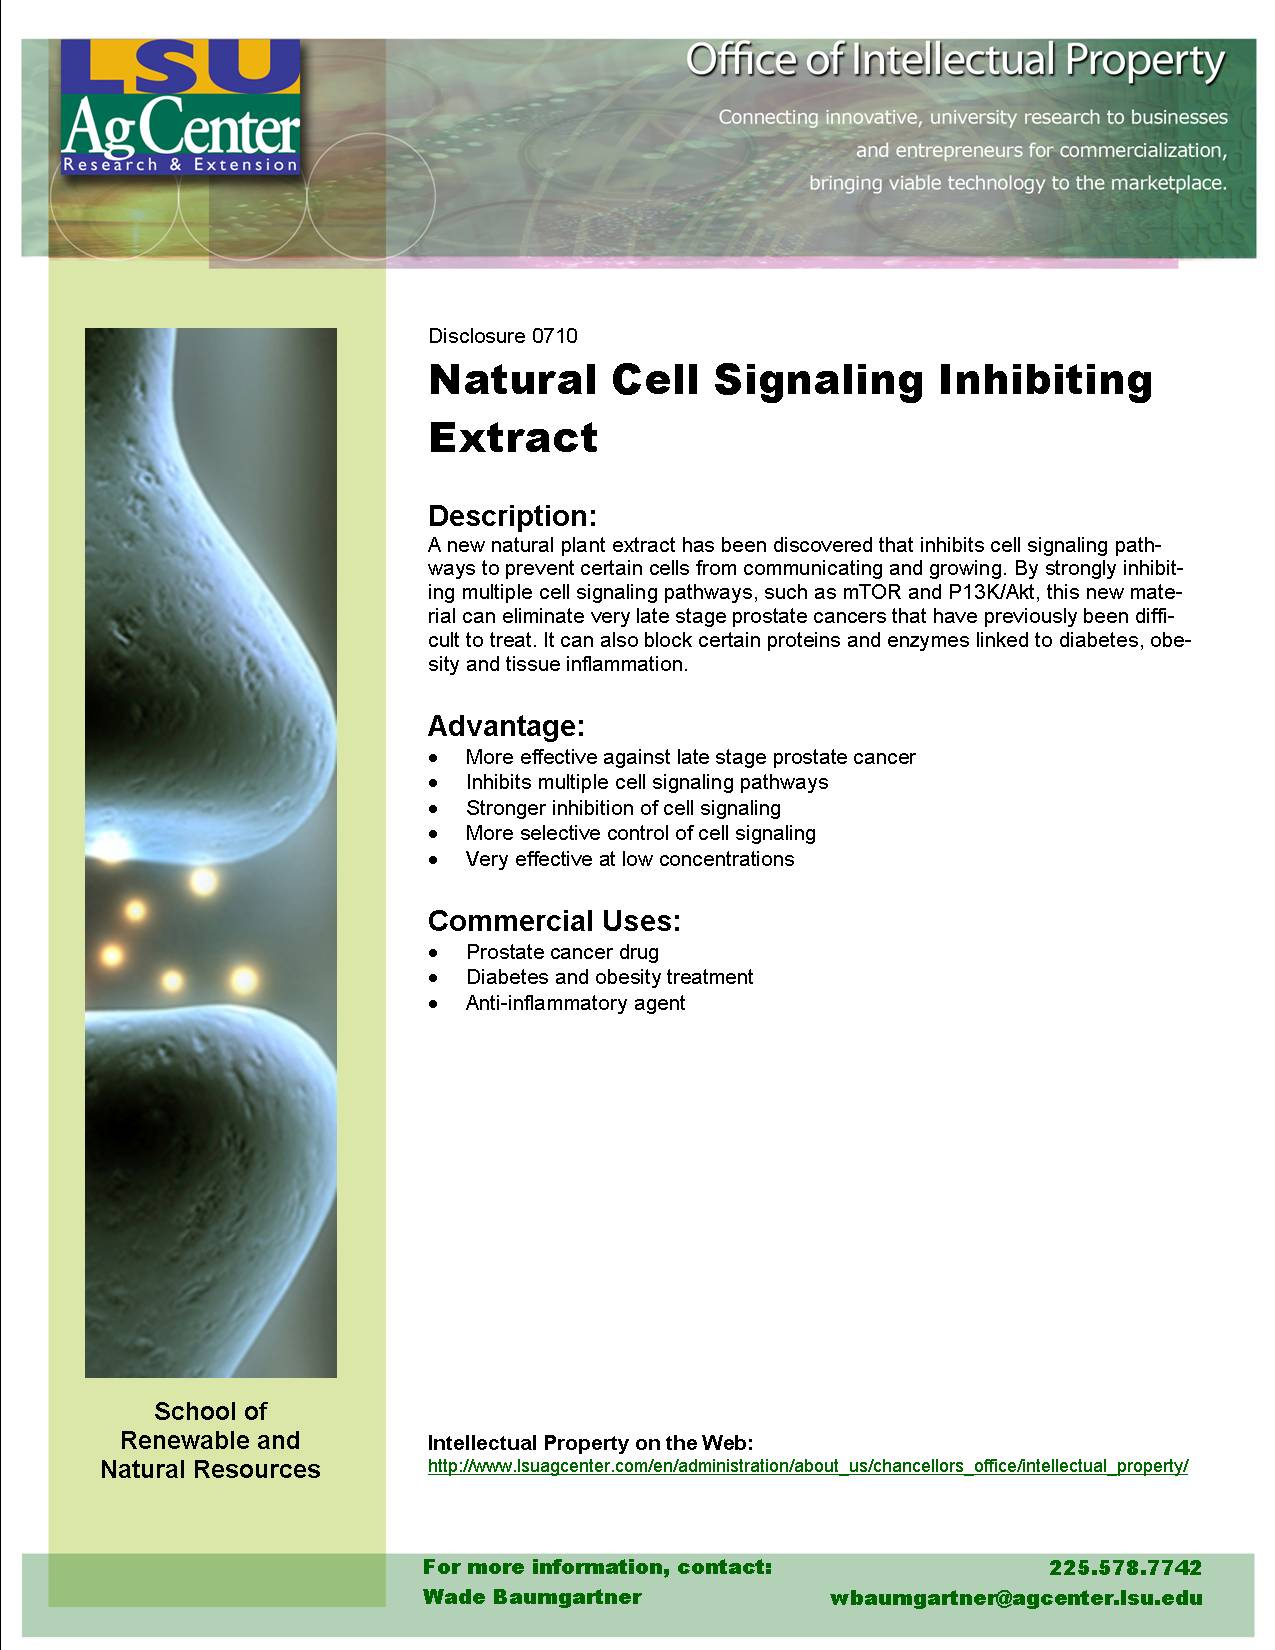 Natural Cell Signaling Pathway Inhibiting Extract